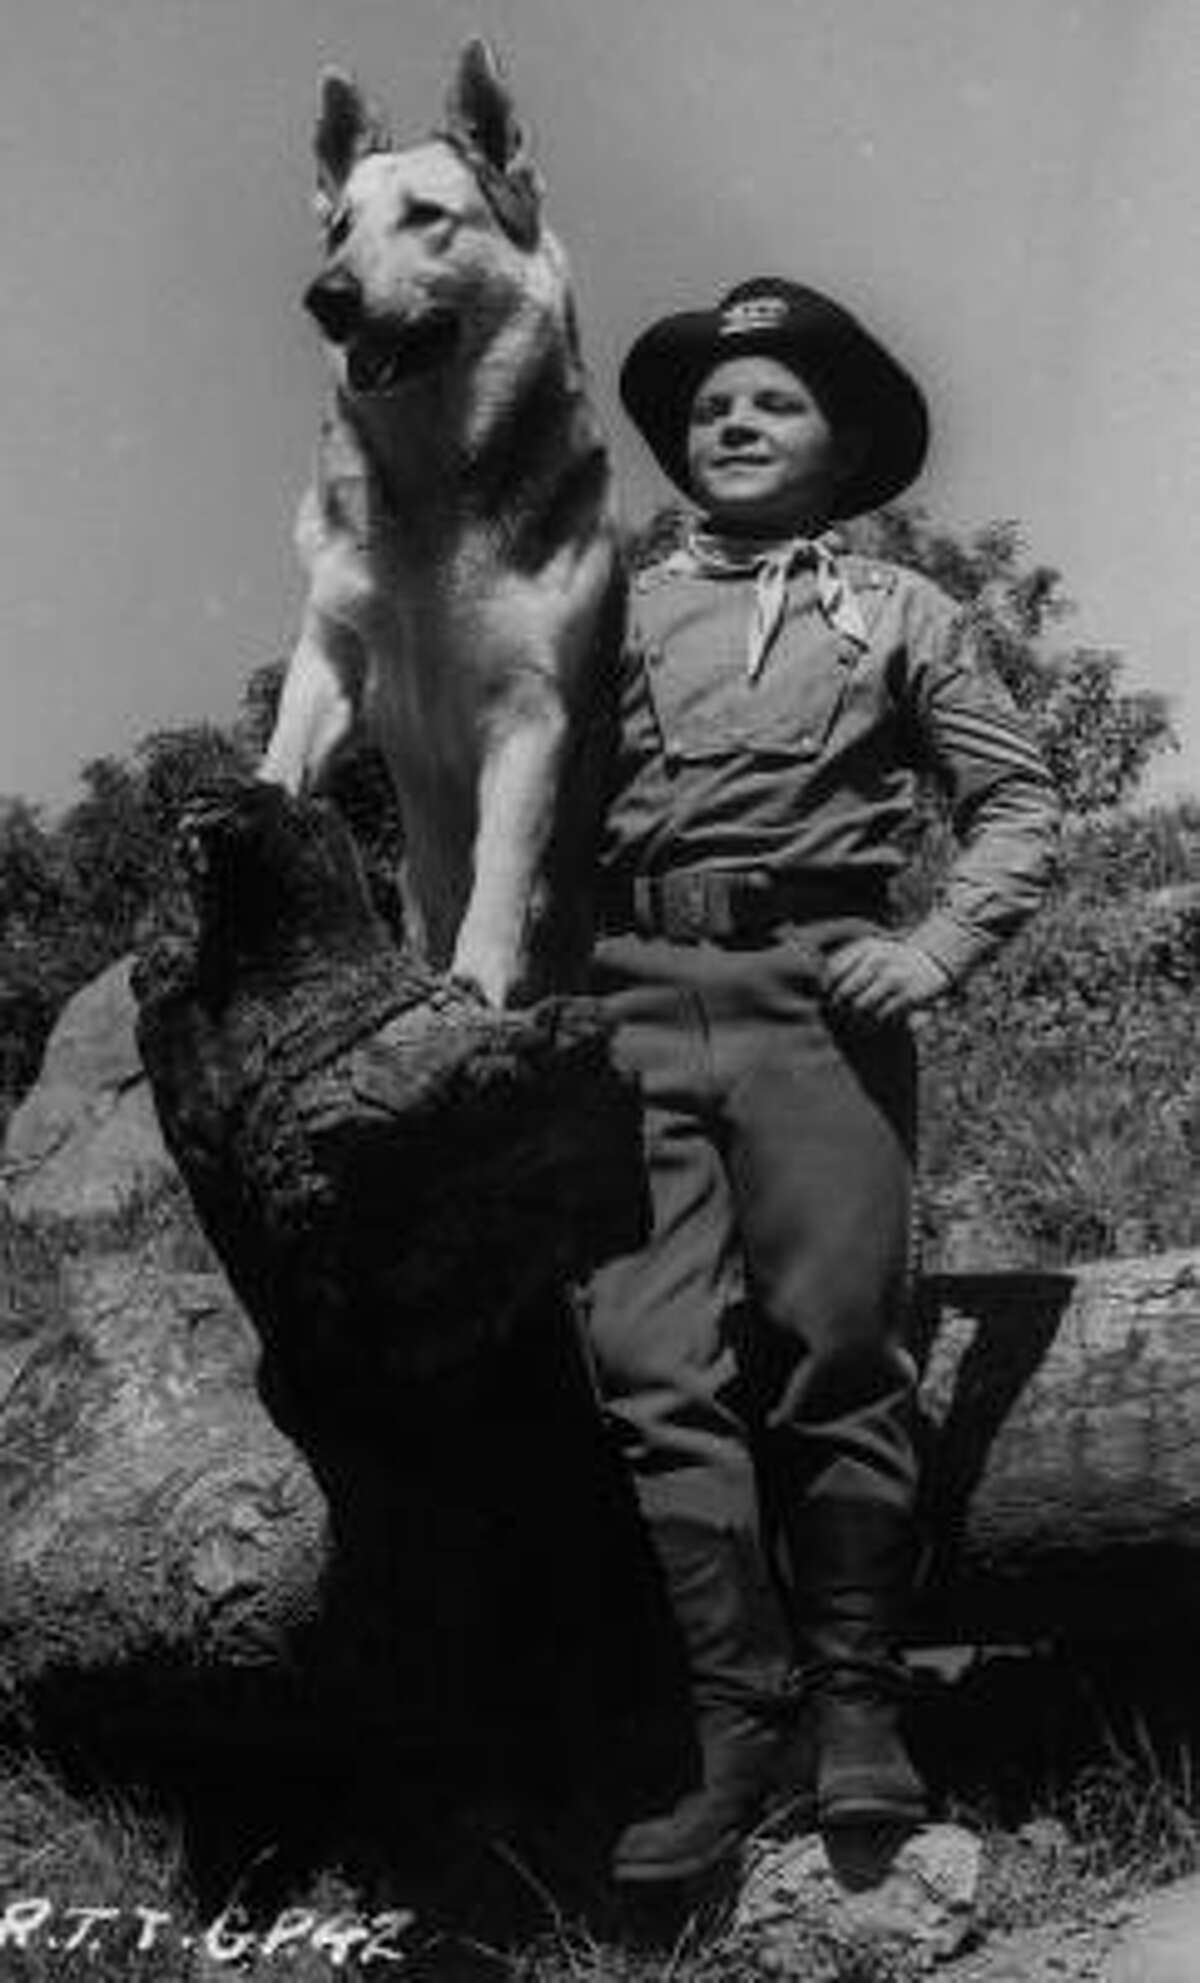 Canine star Rin Tin Tin and actor Lee Aaker starred in The Adventures of Rin Tin Tin on television in the 1950s.